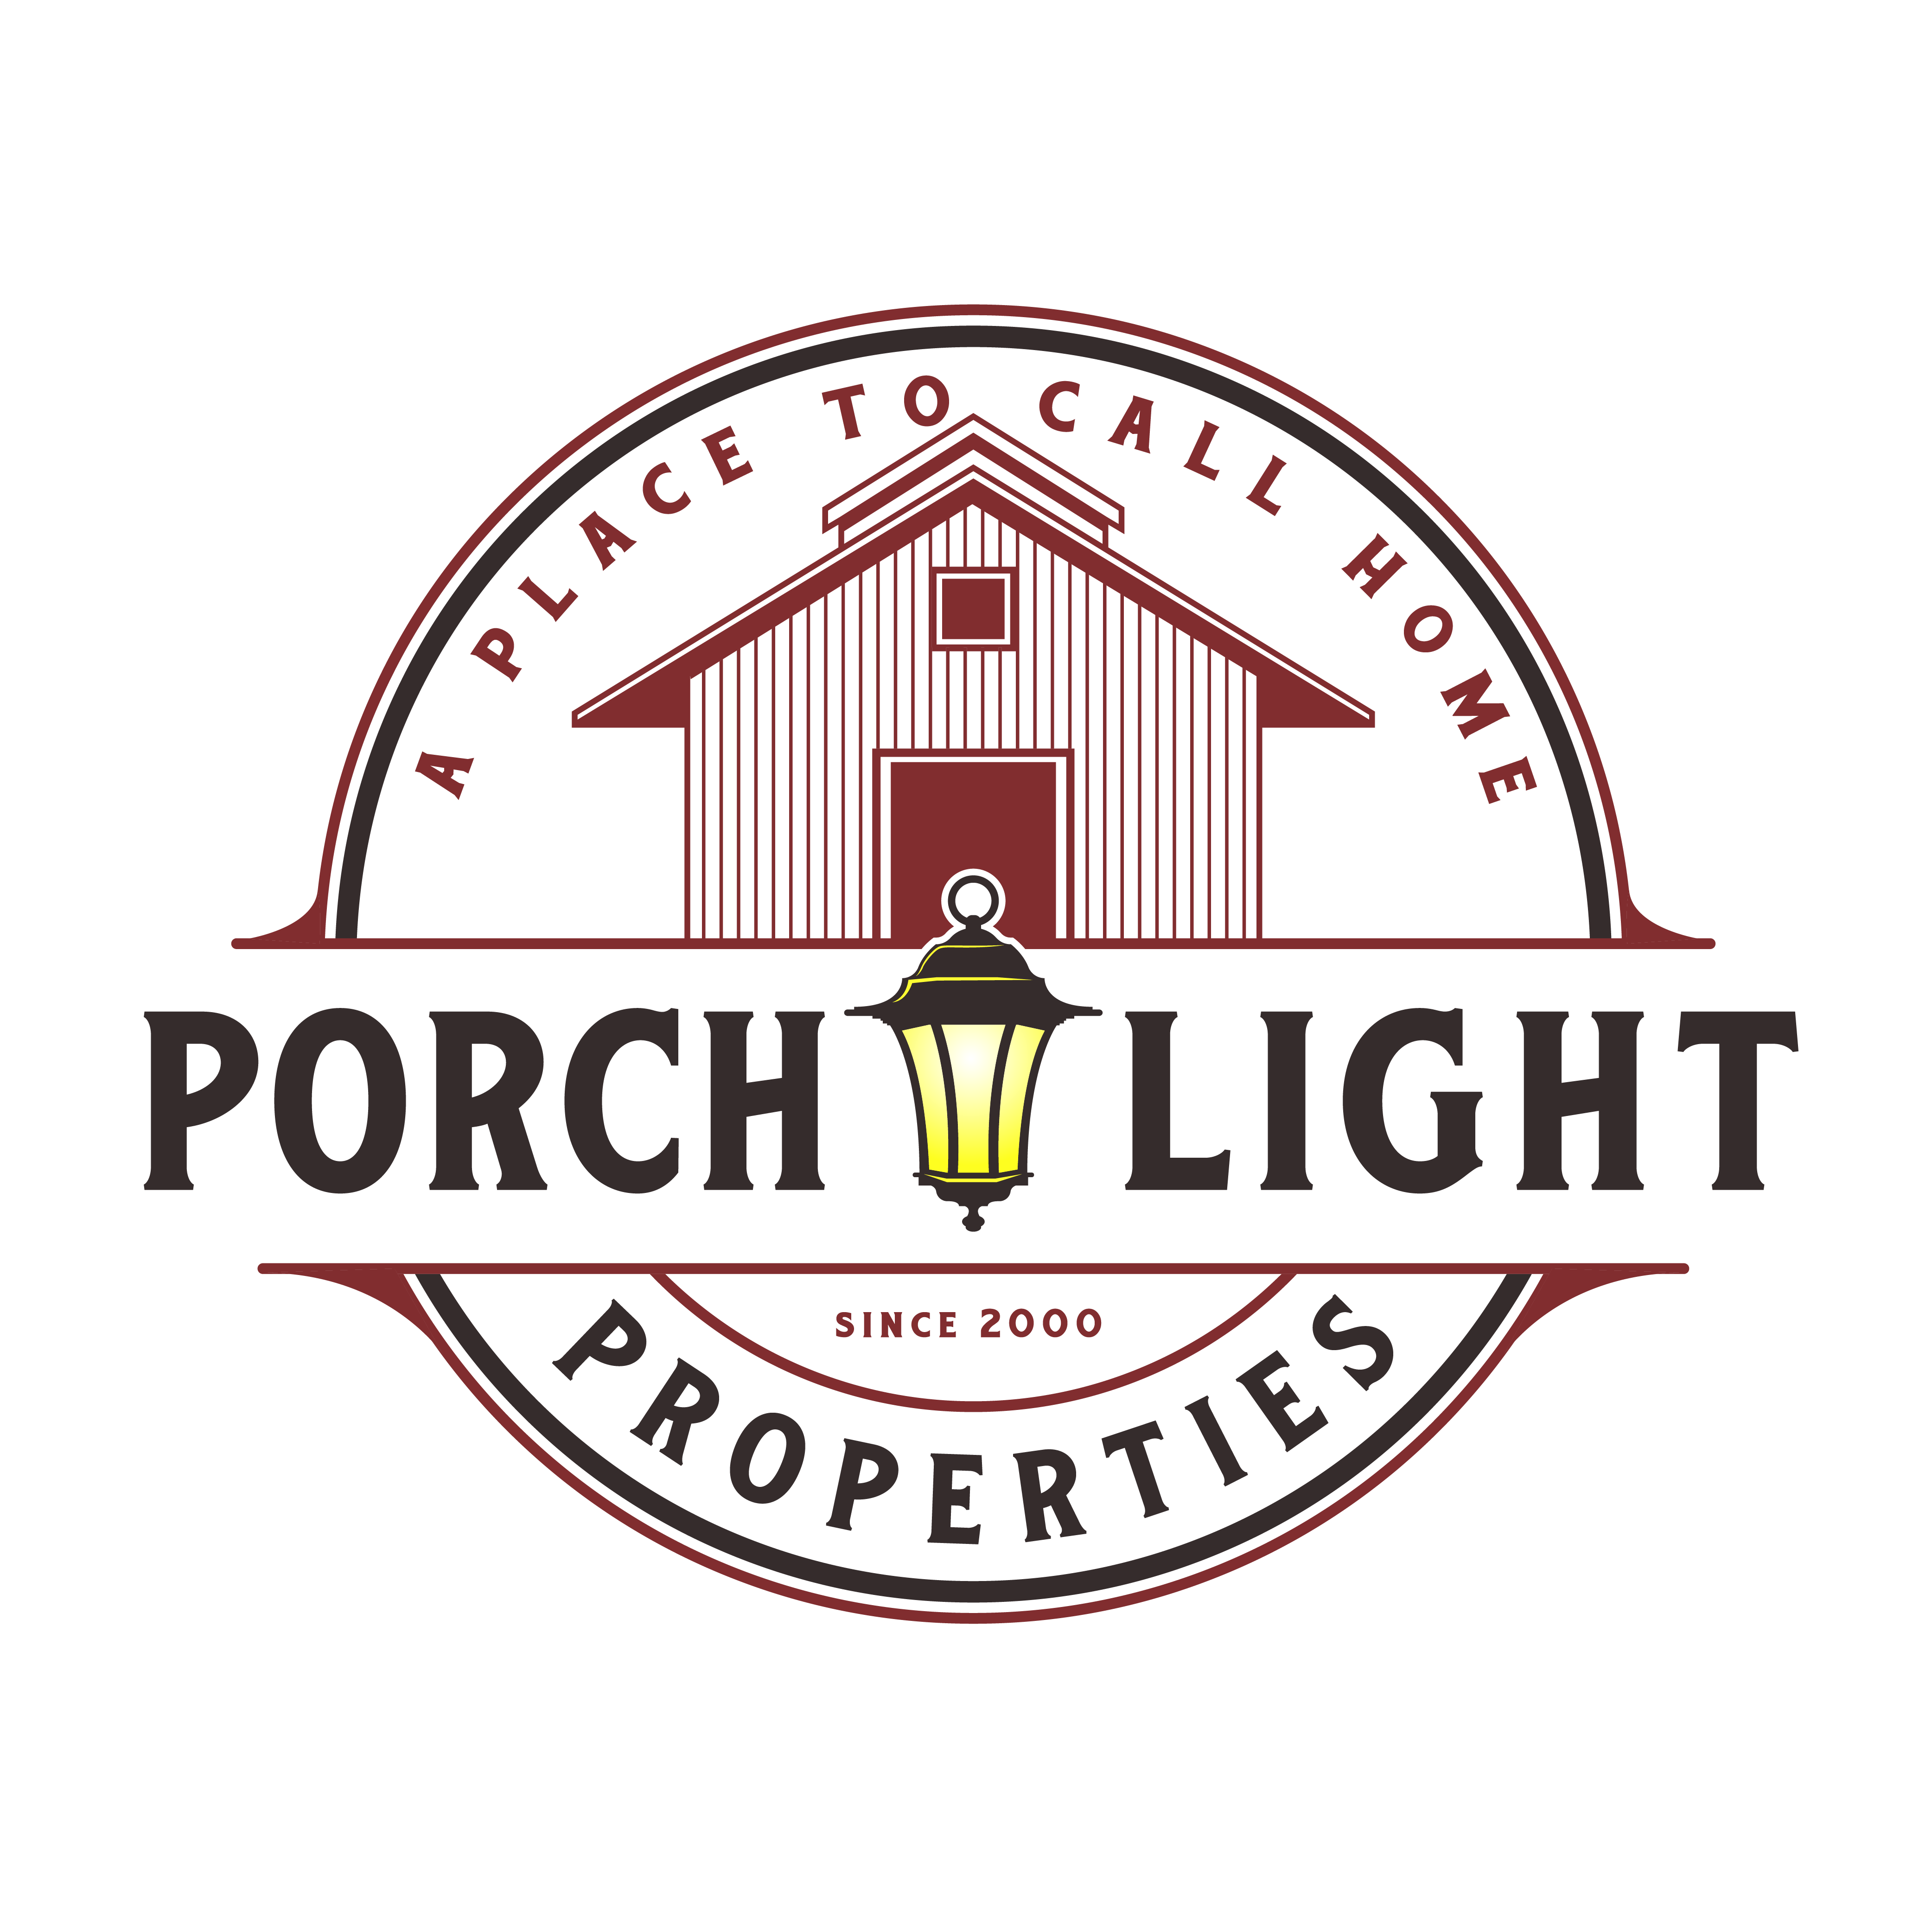 Porch Light Properties- Need a Revamped Logo to keep us on the Cutting Edge